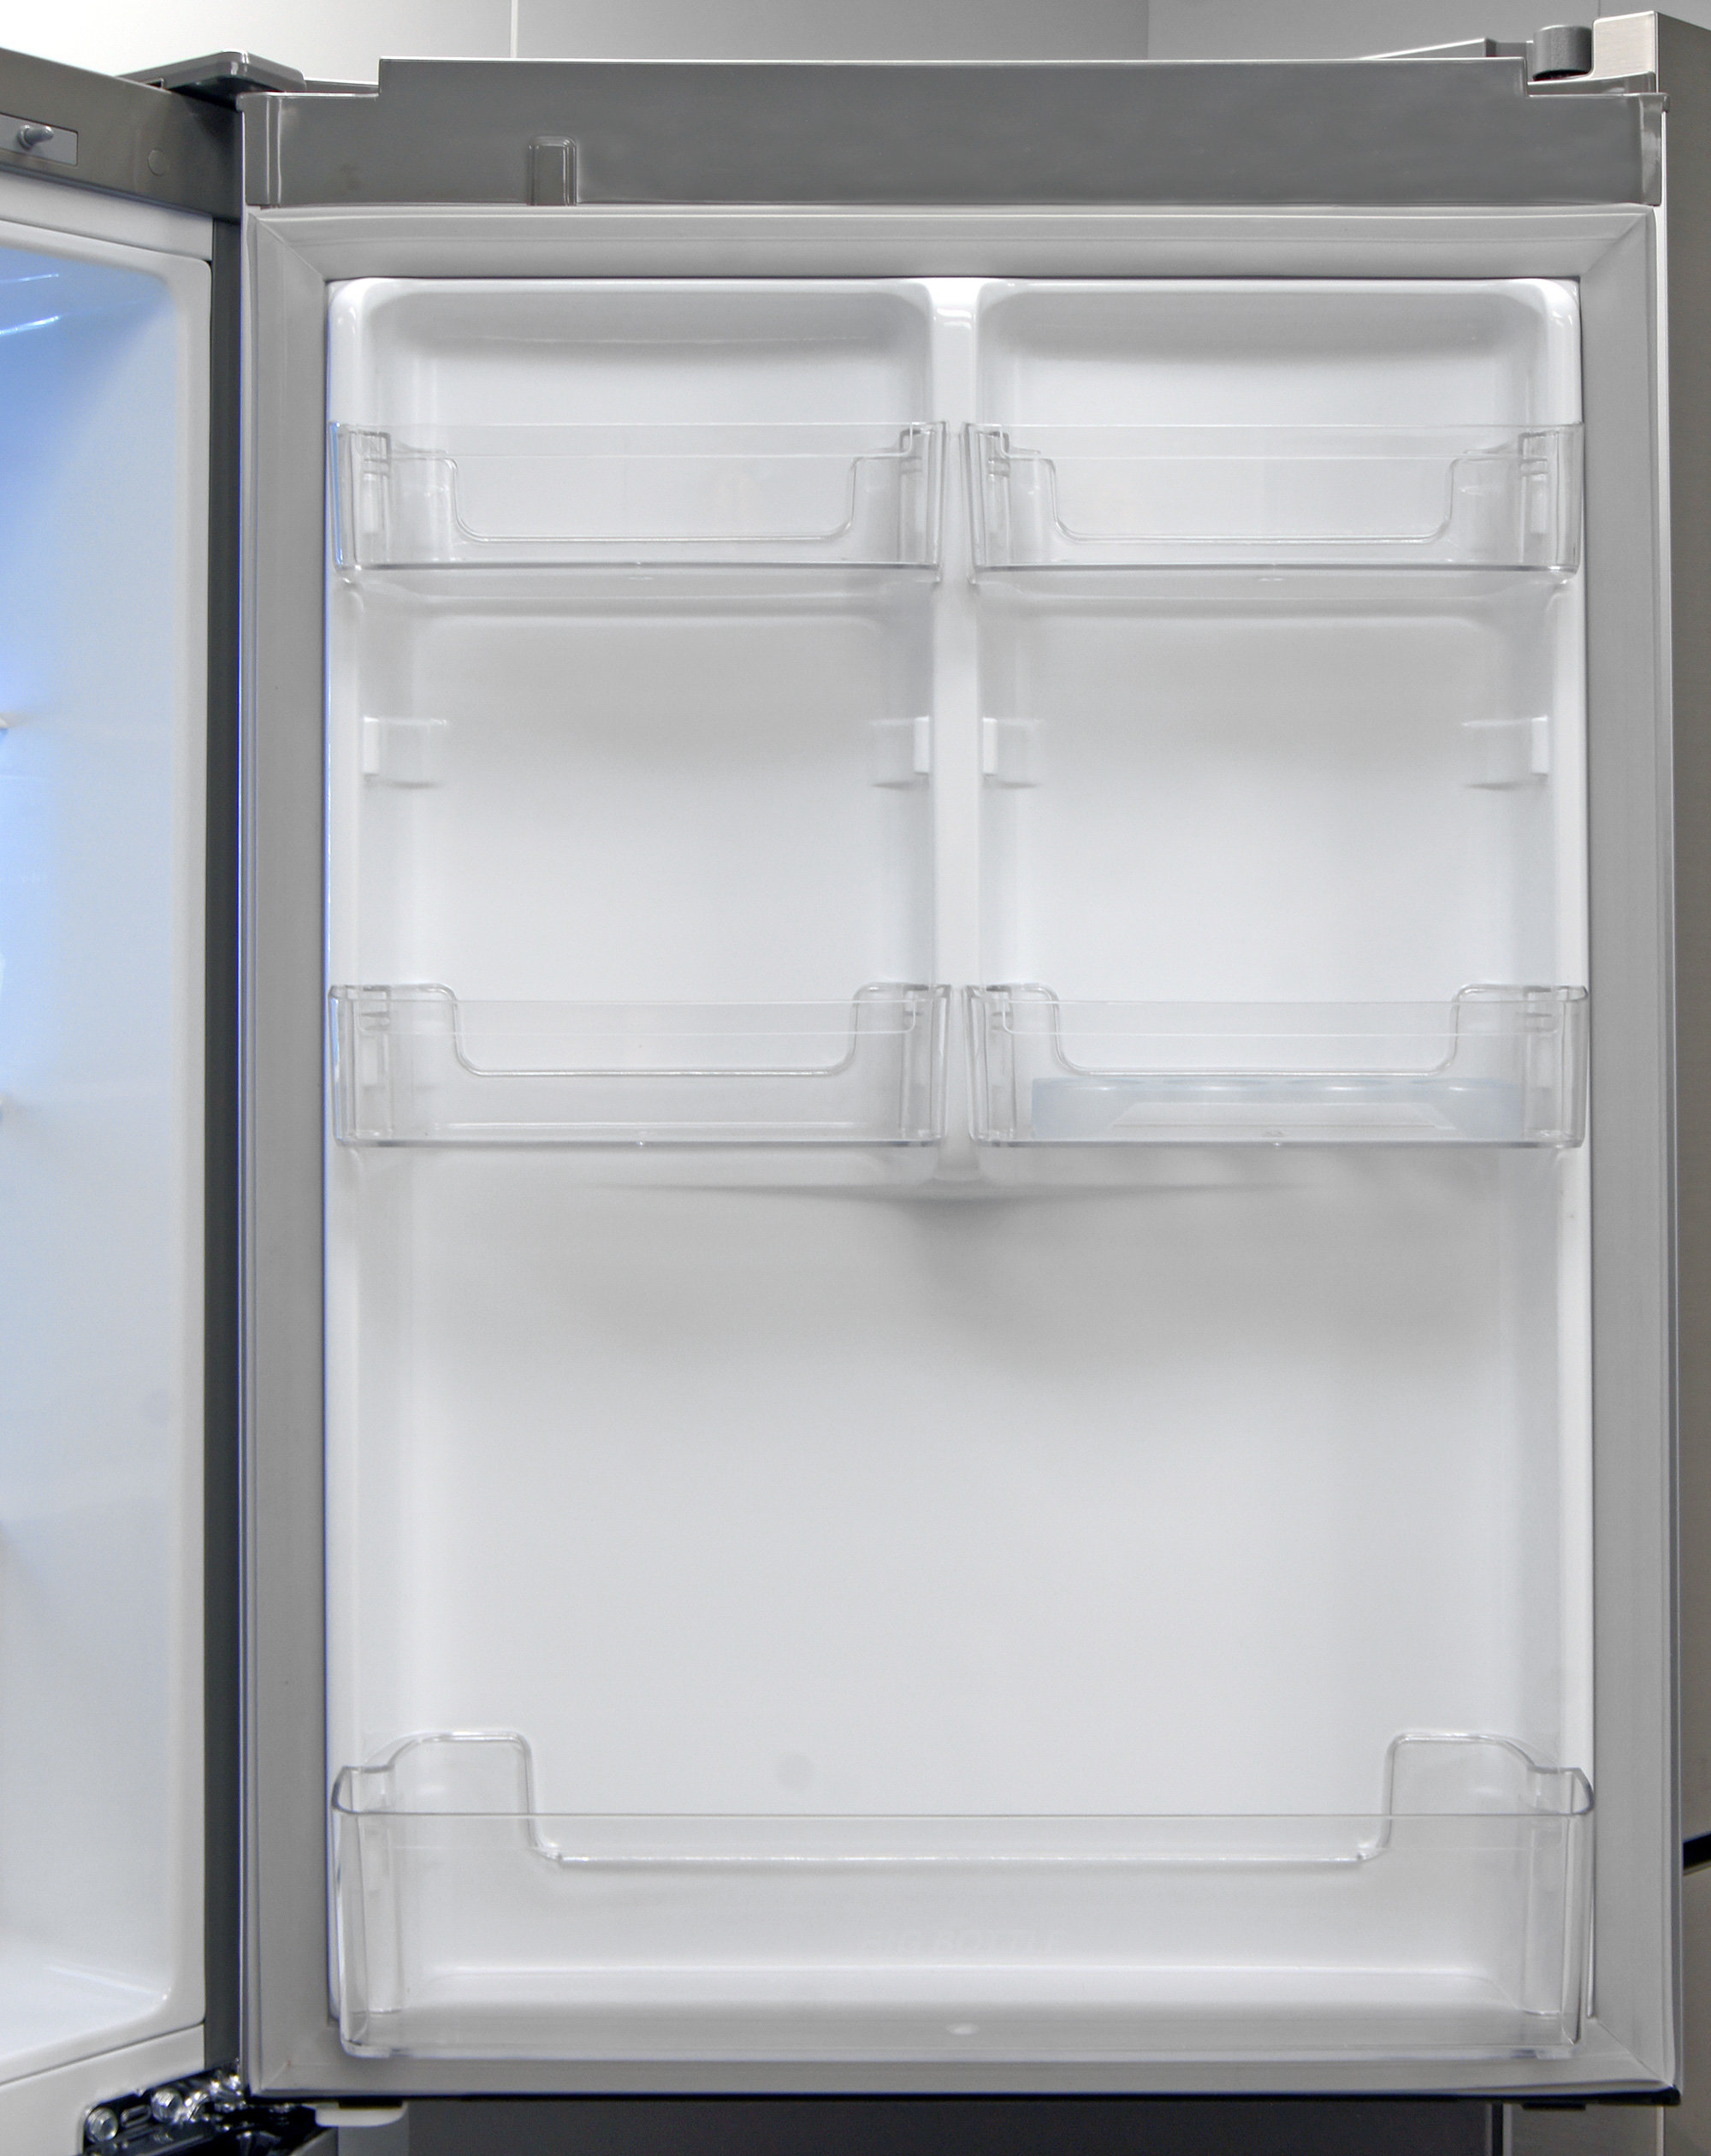 LG LBN10551PV Apartment Refrigerator Review - Reviewed.com ...